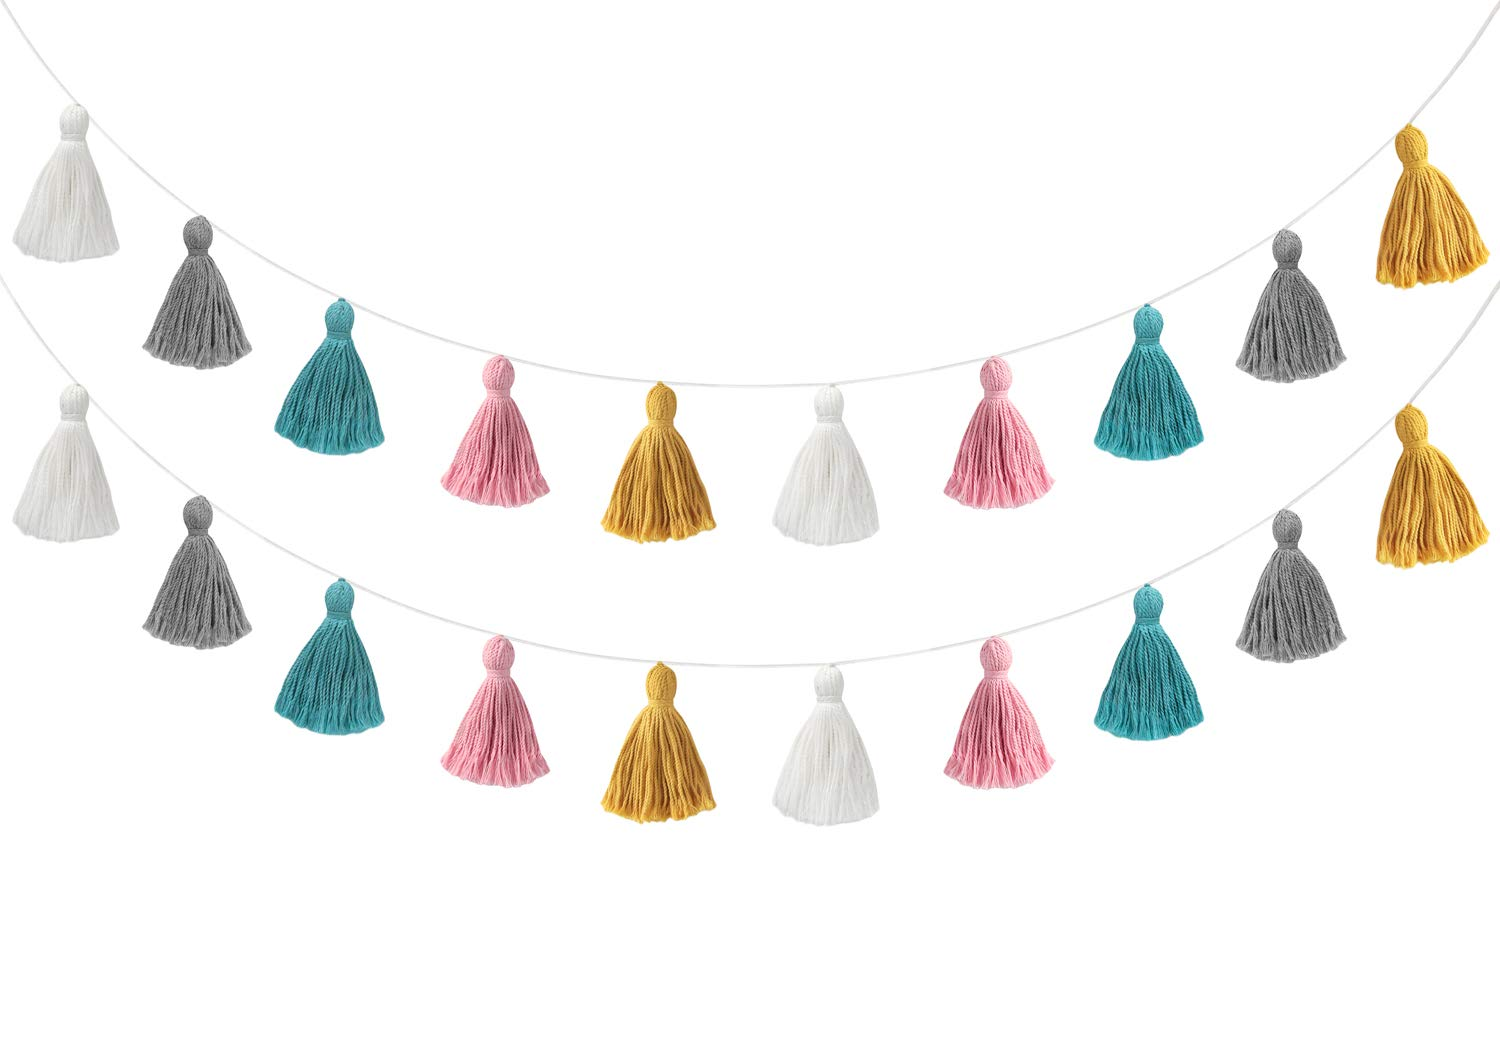 Mkono 2 Pack Cotton Tassel Garland Colored Tassels Banner Decorative Wall Hangings for Boho Home Decor, Birthday Party, Baby Shower, Nursey Room